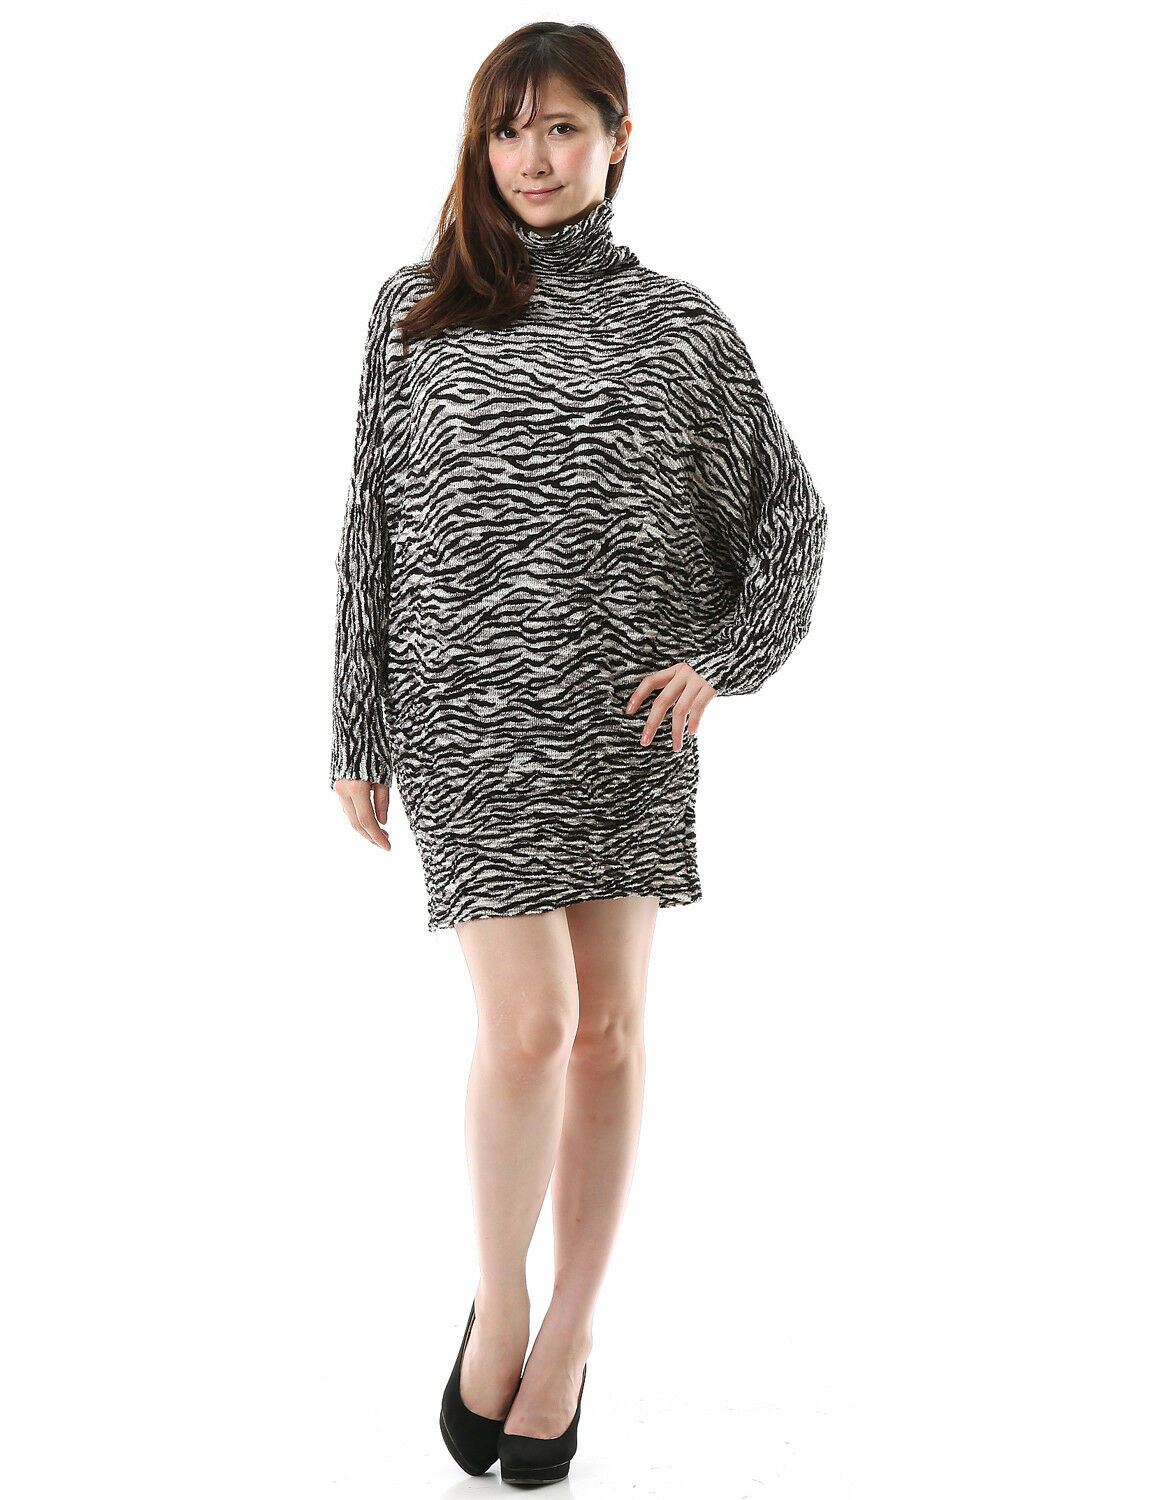 Cut voile fabric Pleated schwarz & Off-Weiß zebra print tunic top damen Loose fit